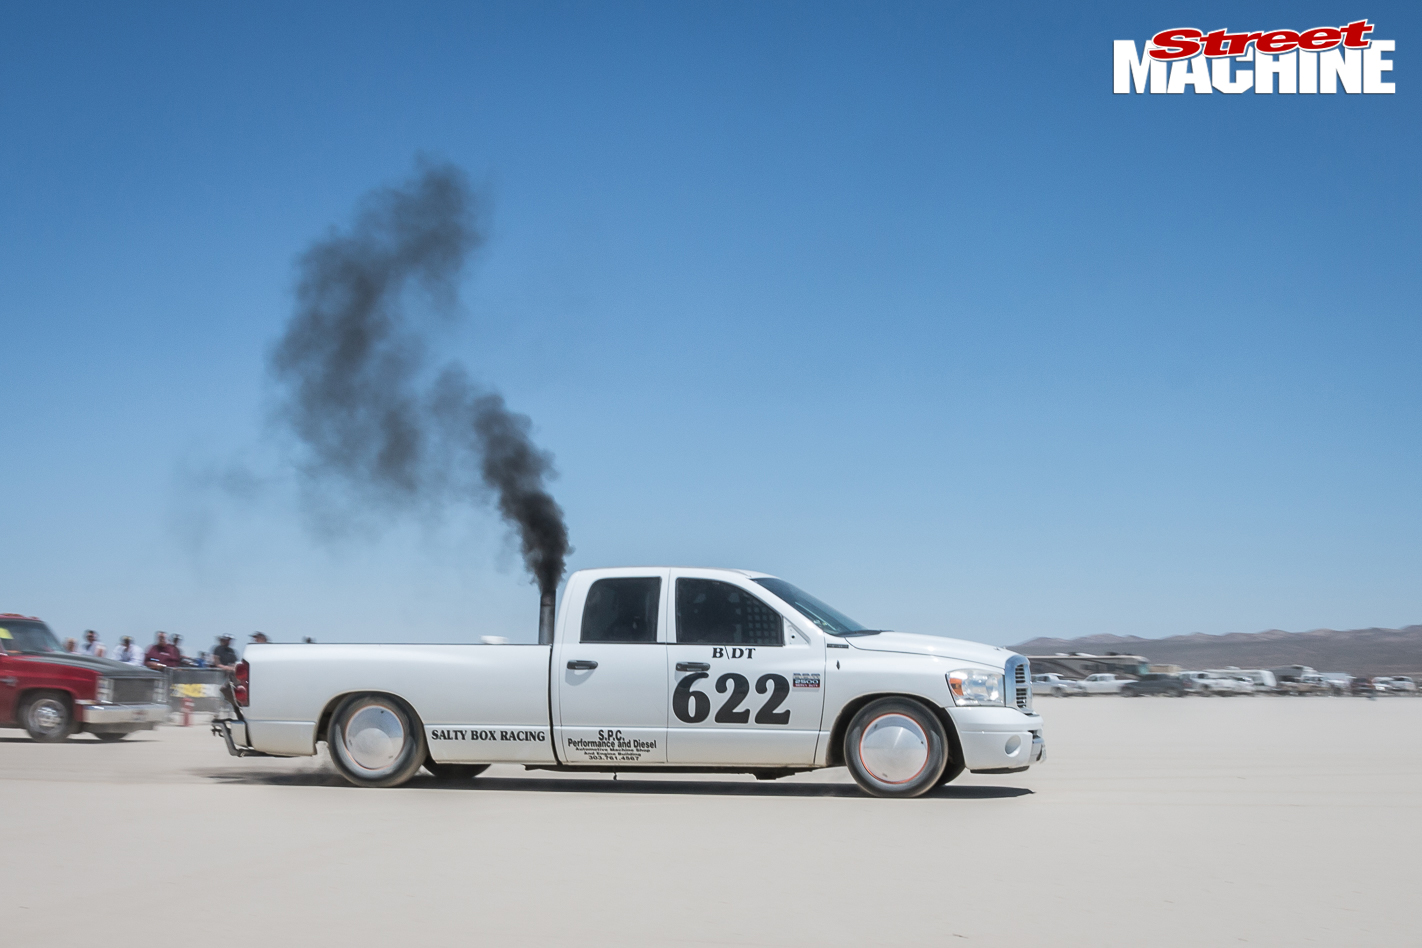 Dodge -Ram -El -Mirage -Salty -Box -Racing -0641